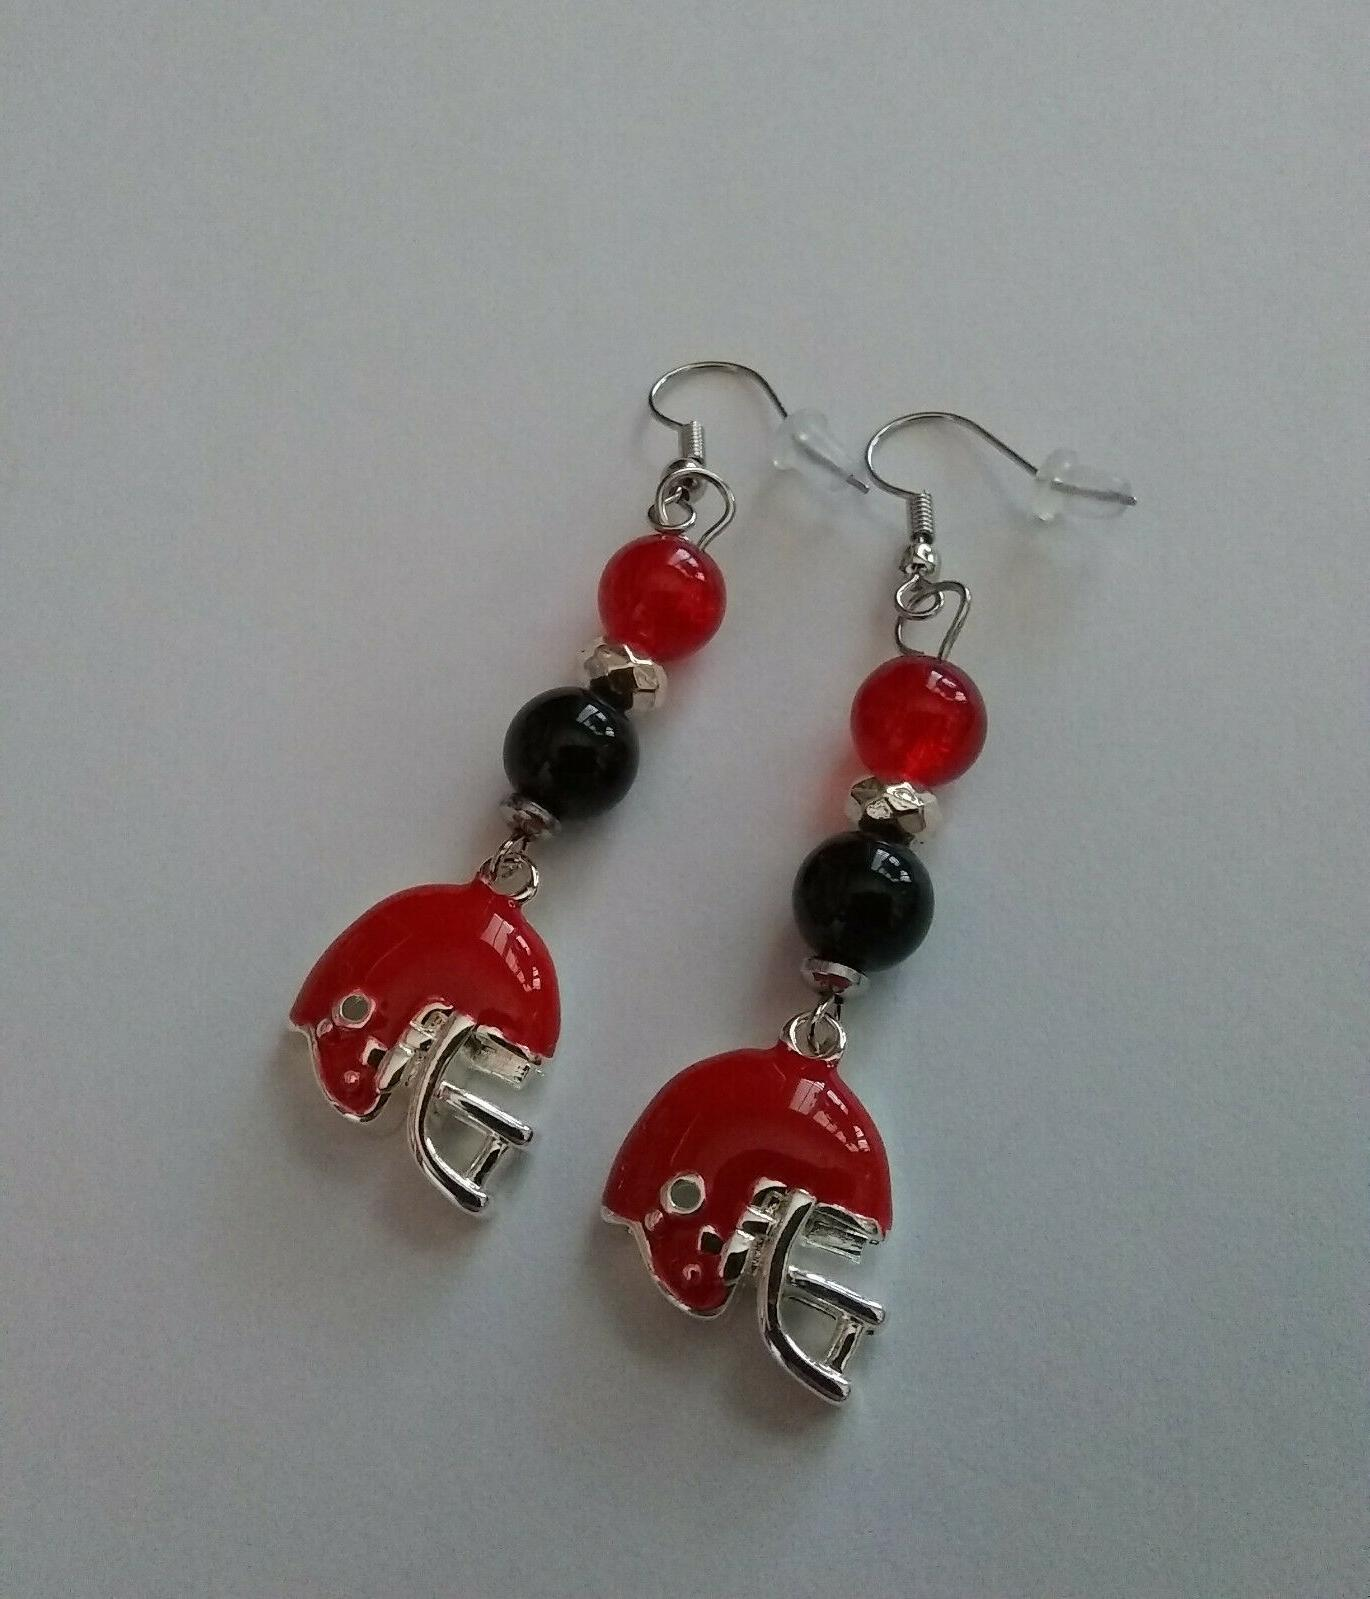 Arizona Earrings, Earrings, NFL Jewelry